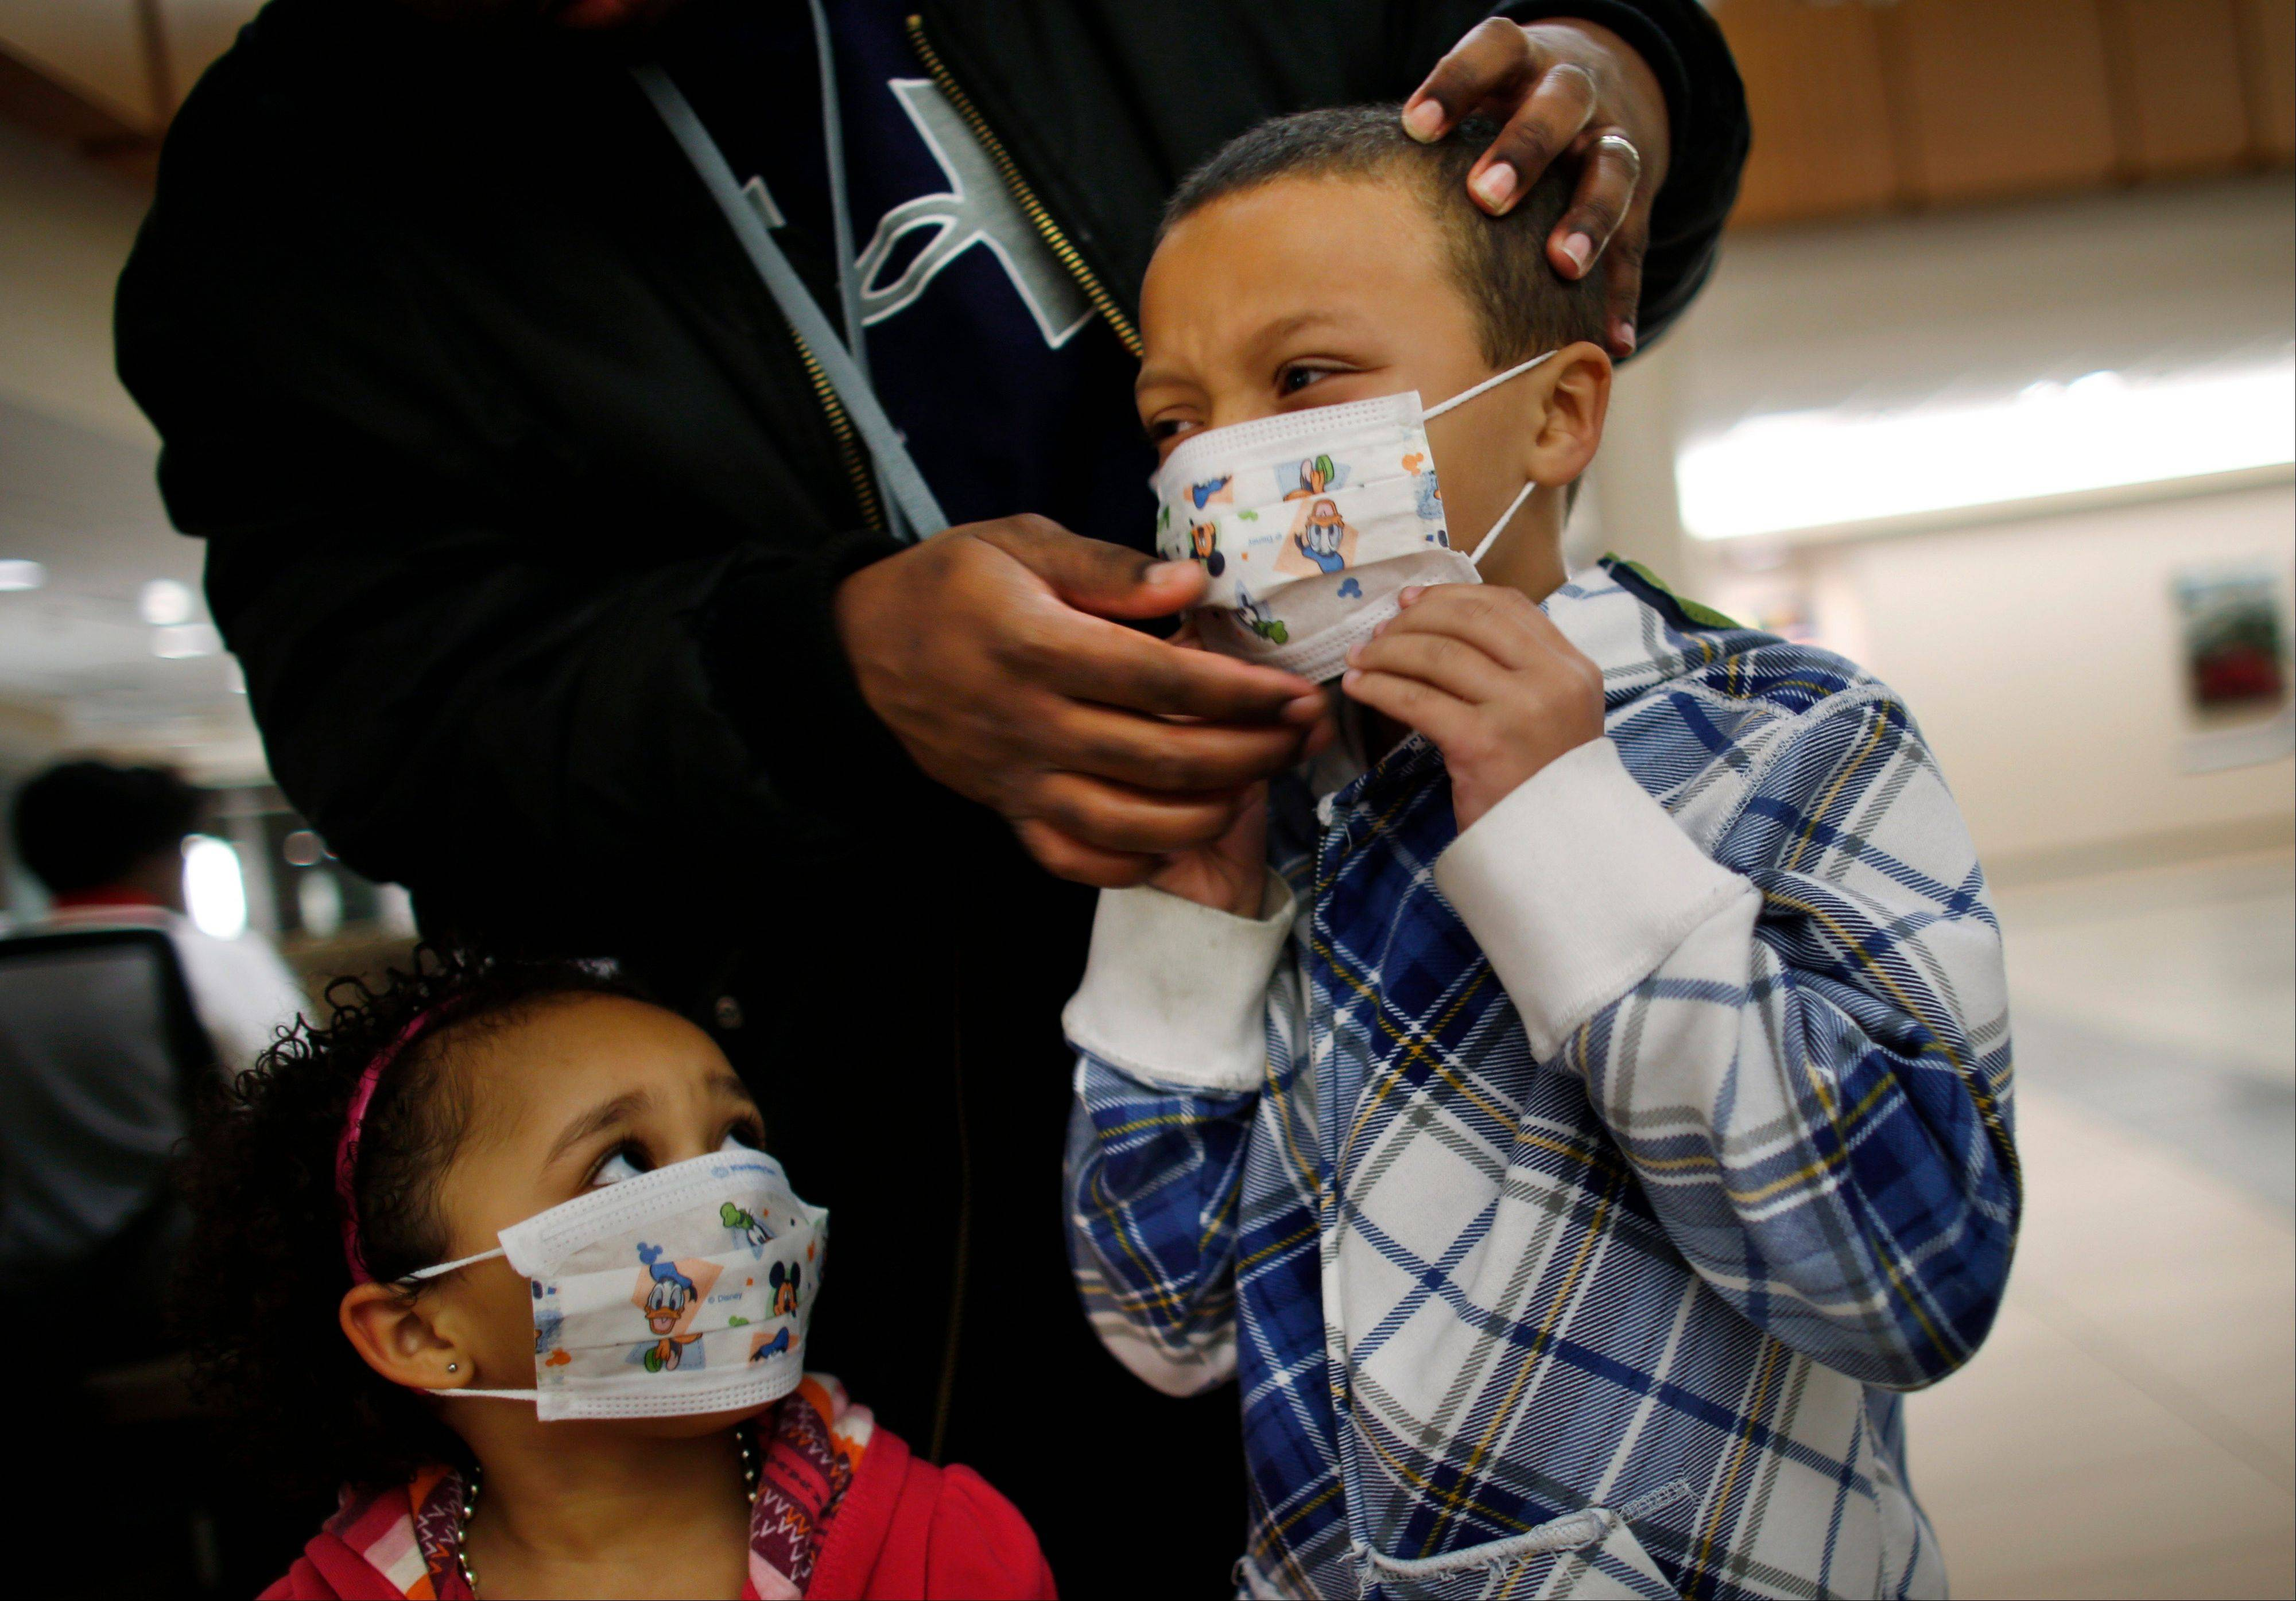 Associated Press/Jan. 9, 2013 Damien Dancy puts masks on his children Damaya, 3, left, and Damien, 7, at Sentara Princess Anne Hospital in Virginia Beach, Va., as hospitals in Hampton Roads are urging patients and visitors to wear a mask at their facilities to help stop the spread of the flu.